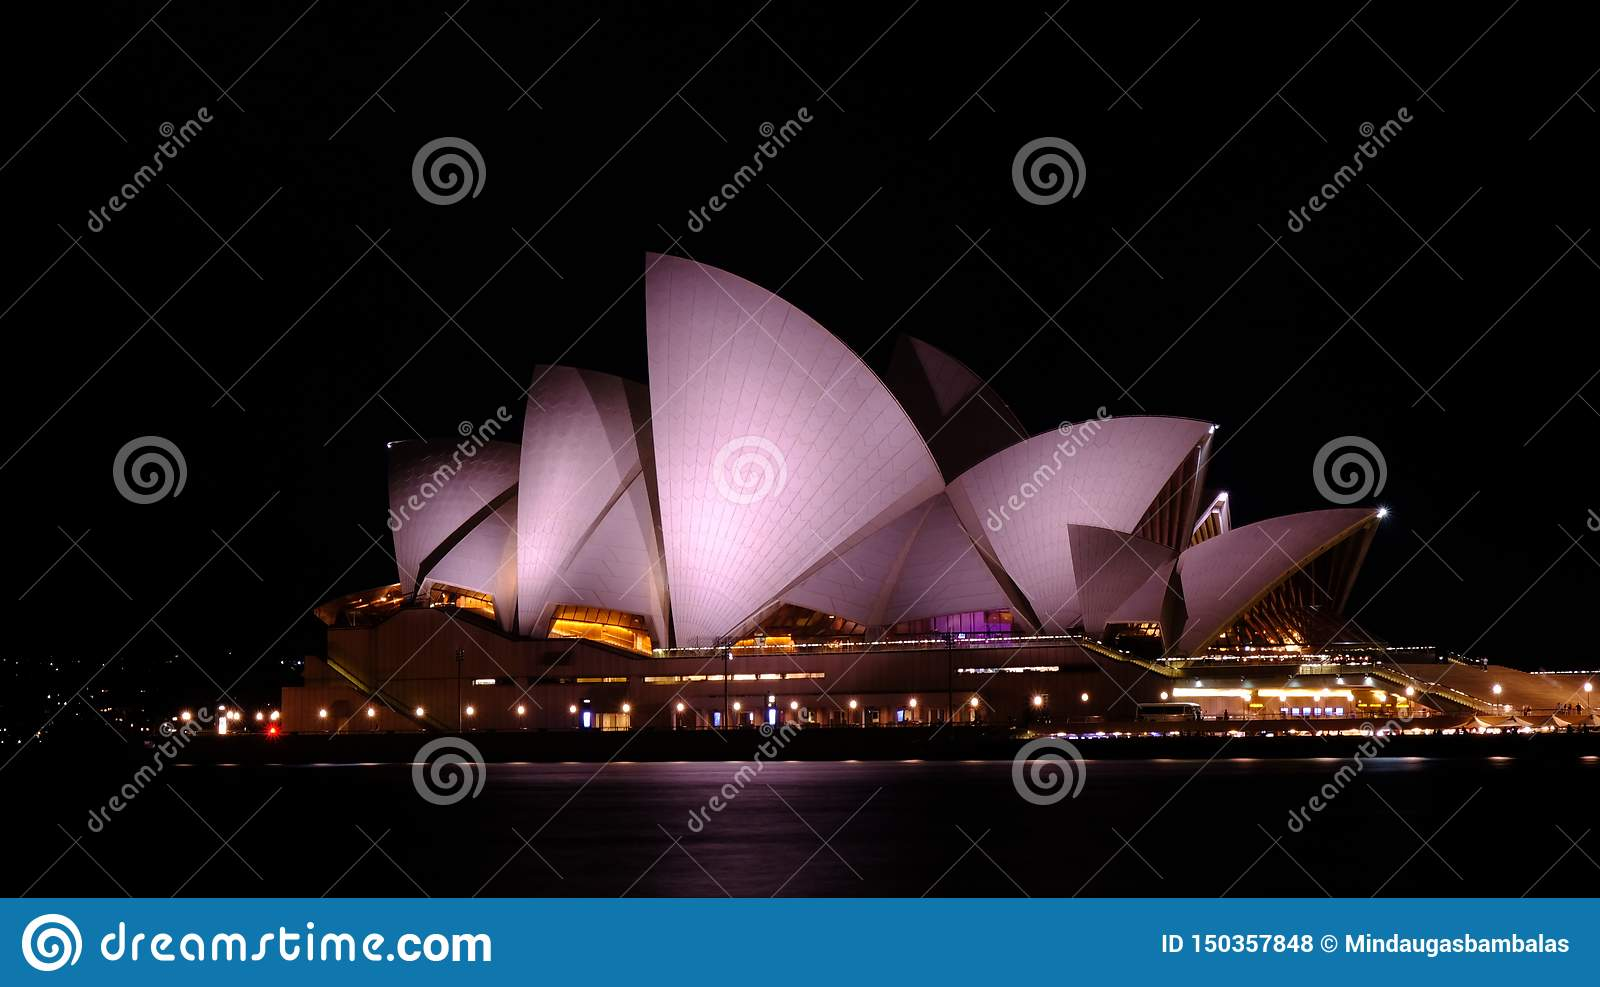 Opera house at night in Sydney